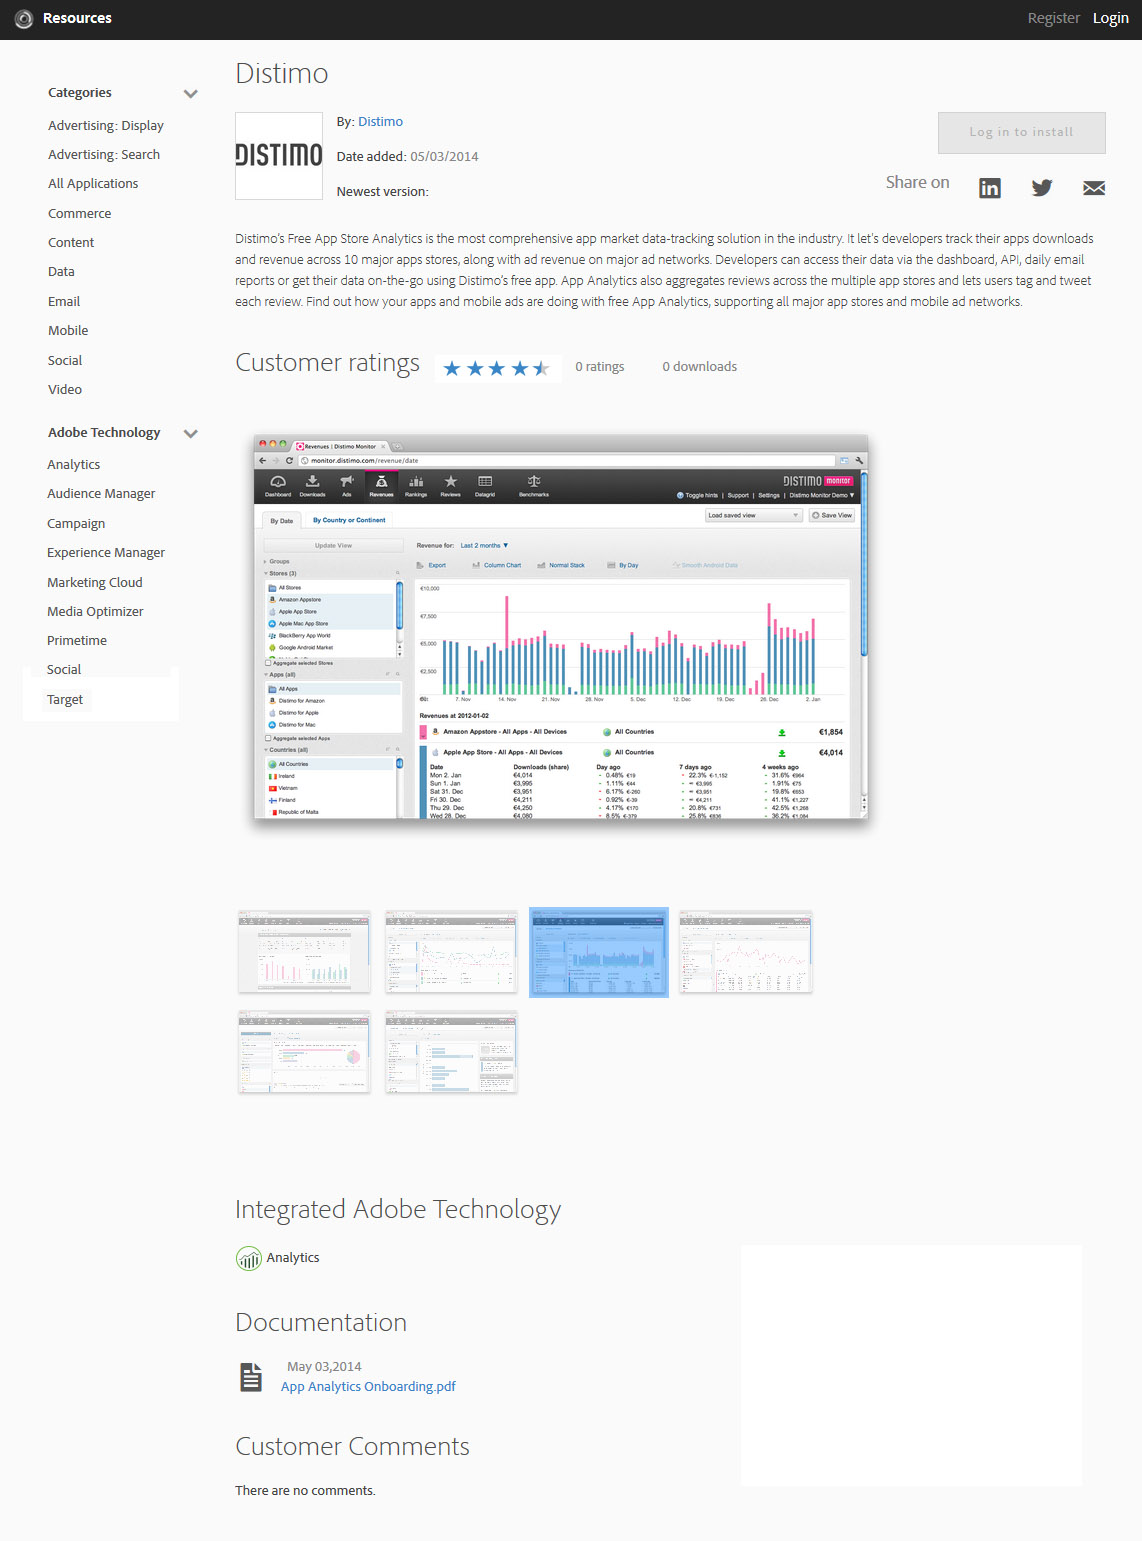 Announcing Adobe Marketing Cloud Exchange - Adobe